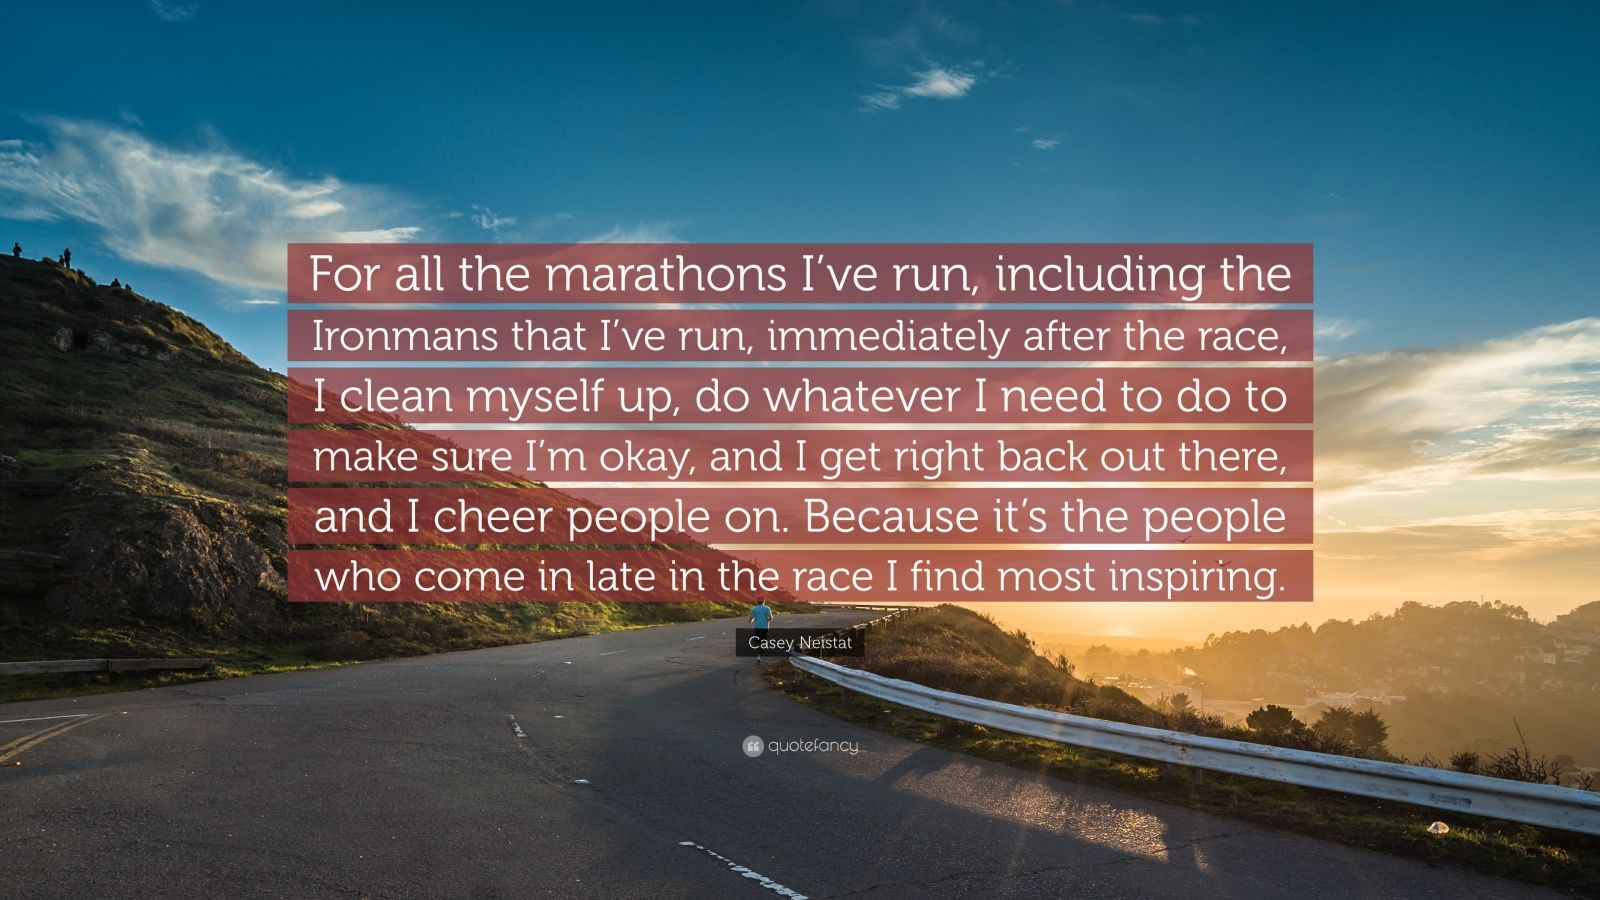 "Casey Neistat Quote: ""For all the marathons I've run, including the Ironmans that I've run, immediately after the race, I clean myself up, do whatever I need to do to make sure I'm okay, and I get right back out there, and I cheer people on. Because it's the people who come in late in the race I find most inspiring."""